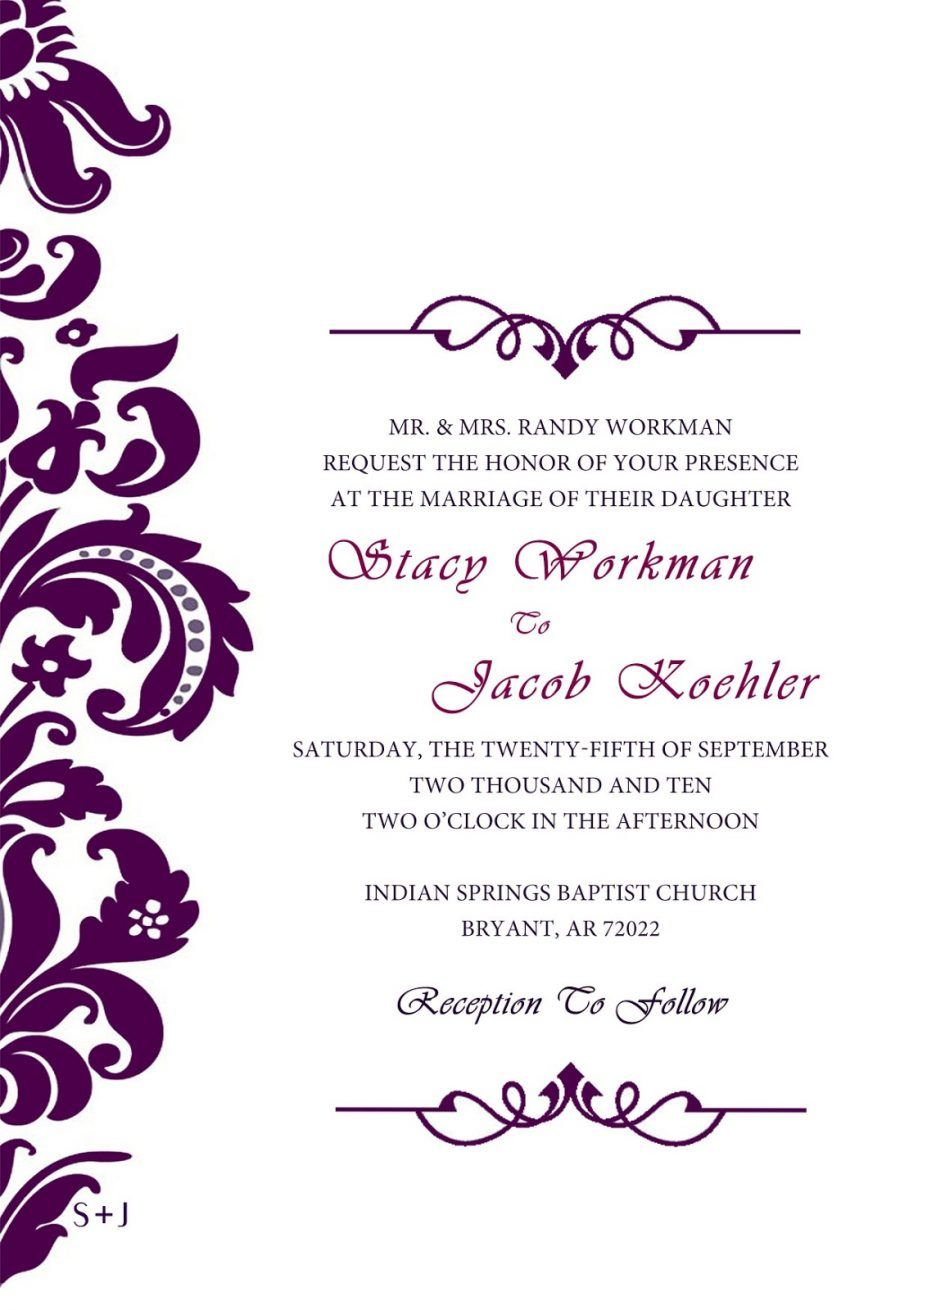 wedding invitation templates invitations wedding formal wedding wedding invitation cards design online